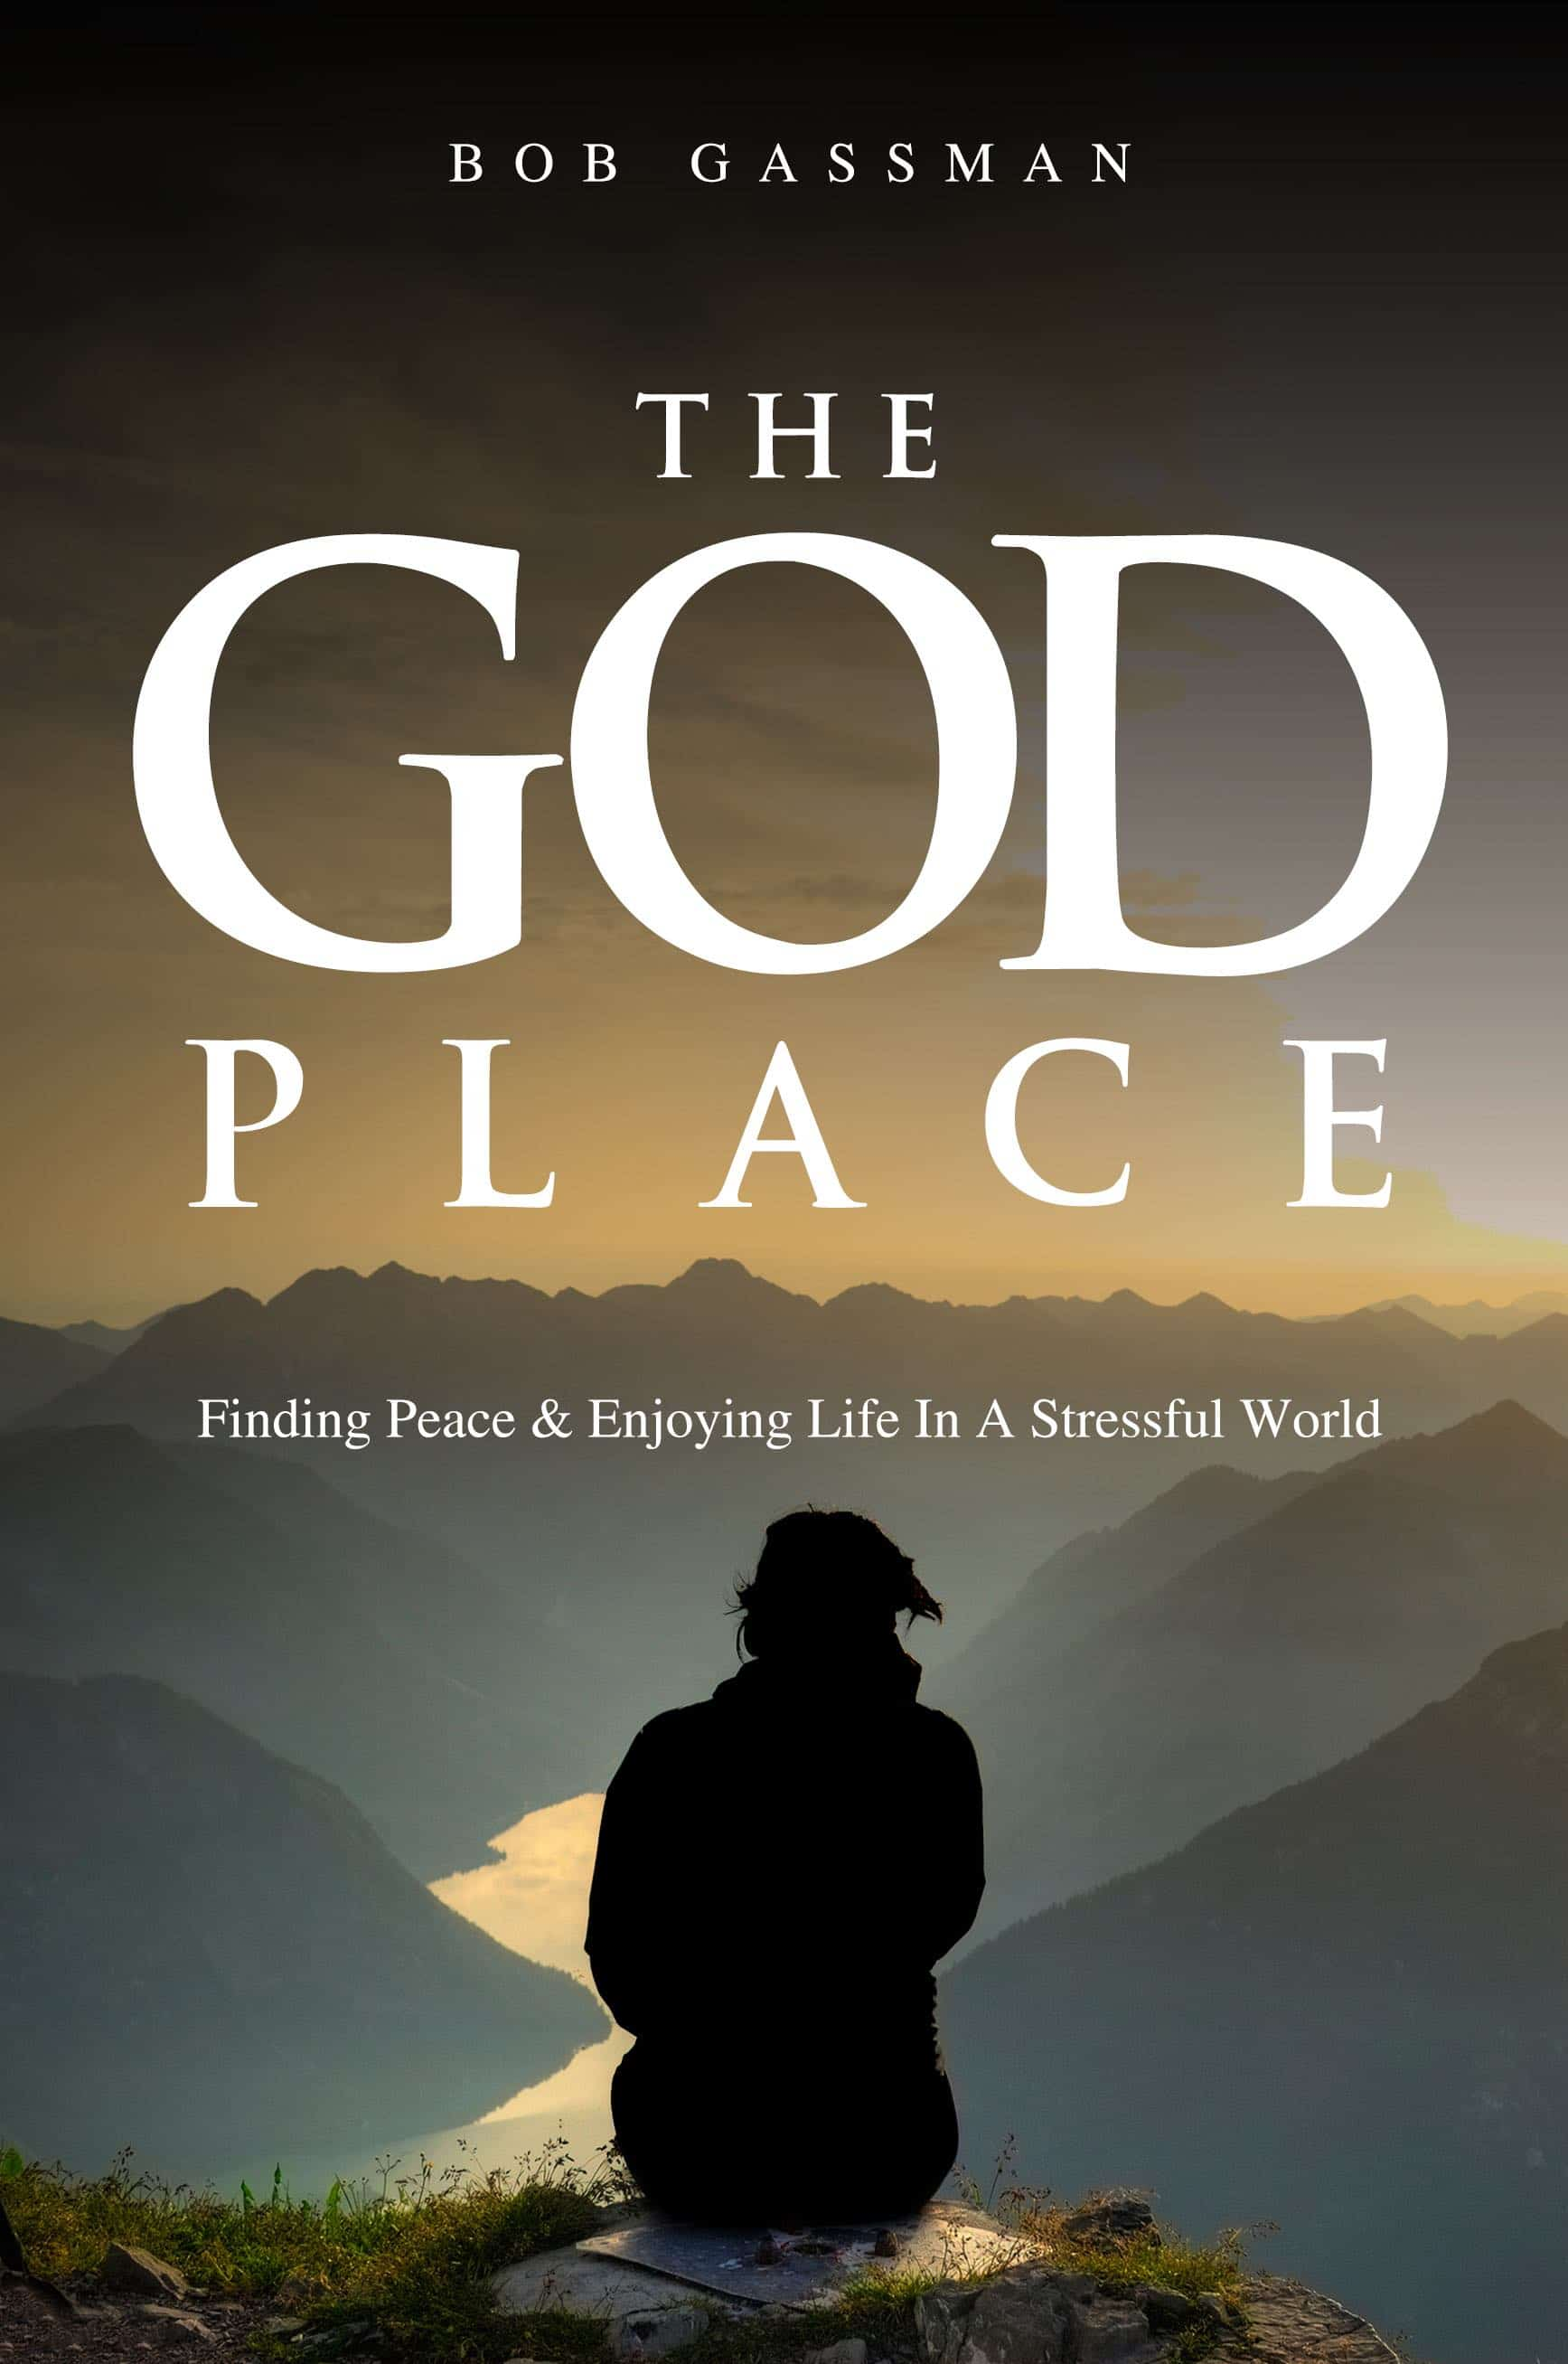 THE GOD PLACE book by Bob Gassman